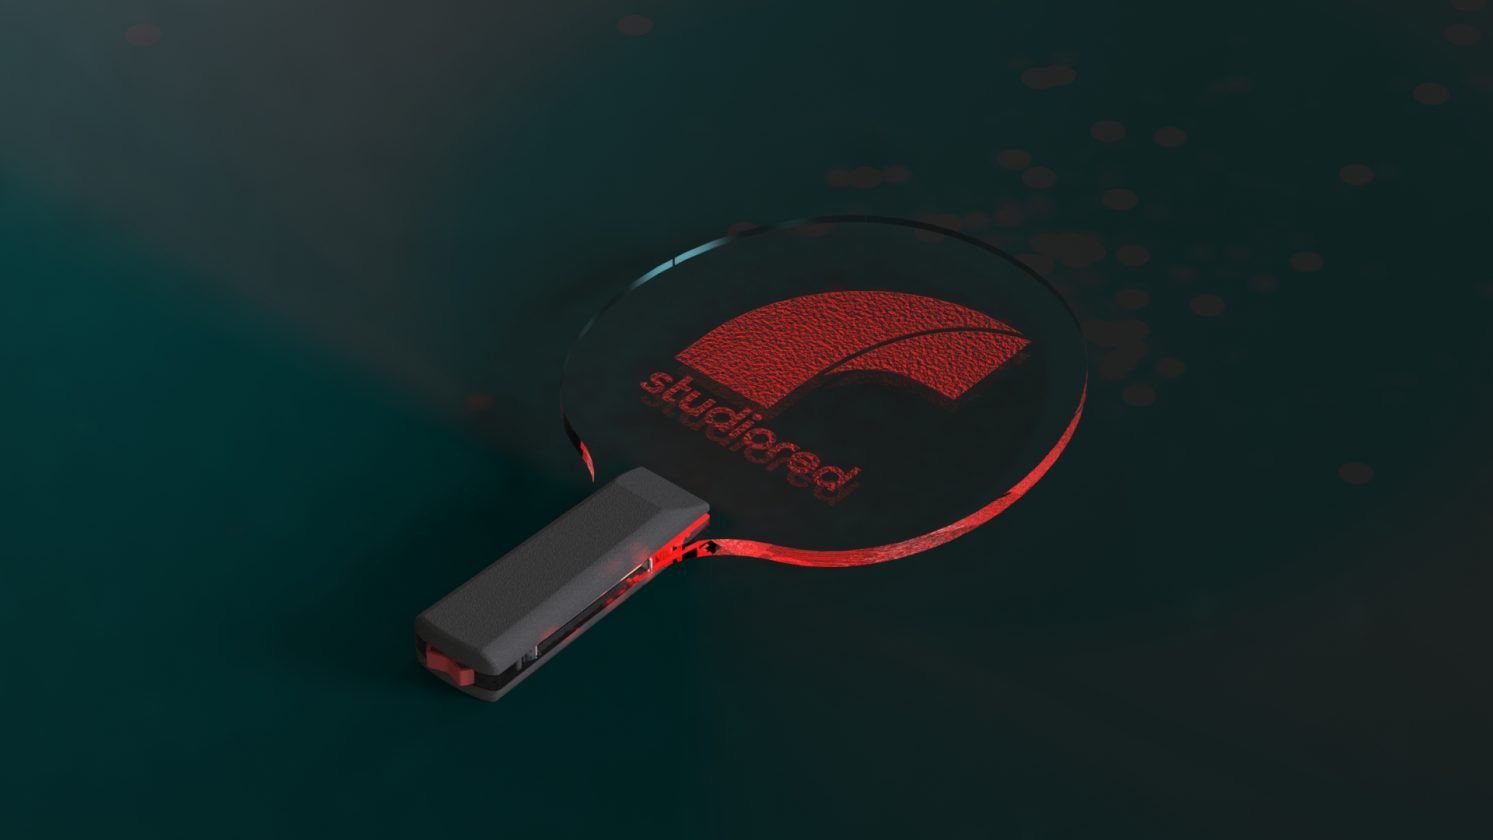 rendered pingpong paddle